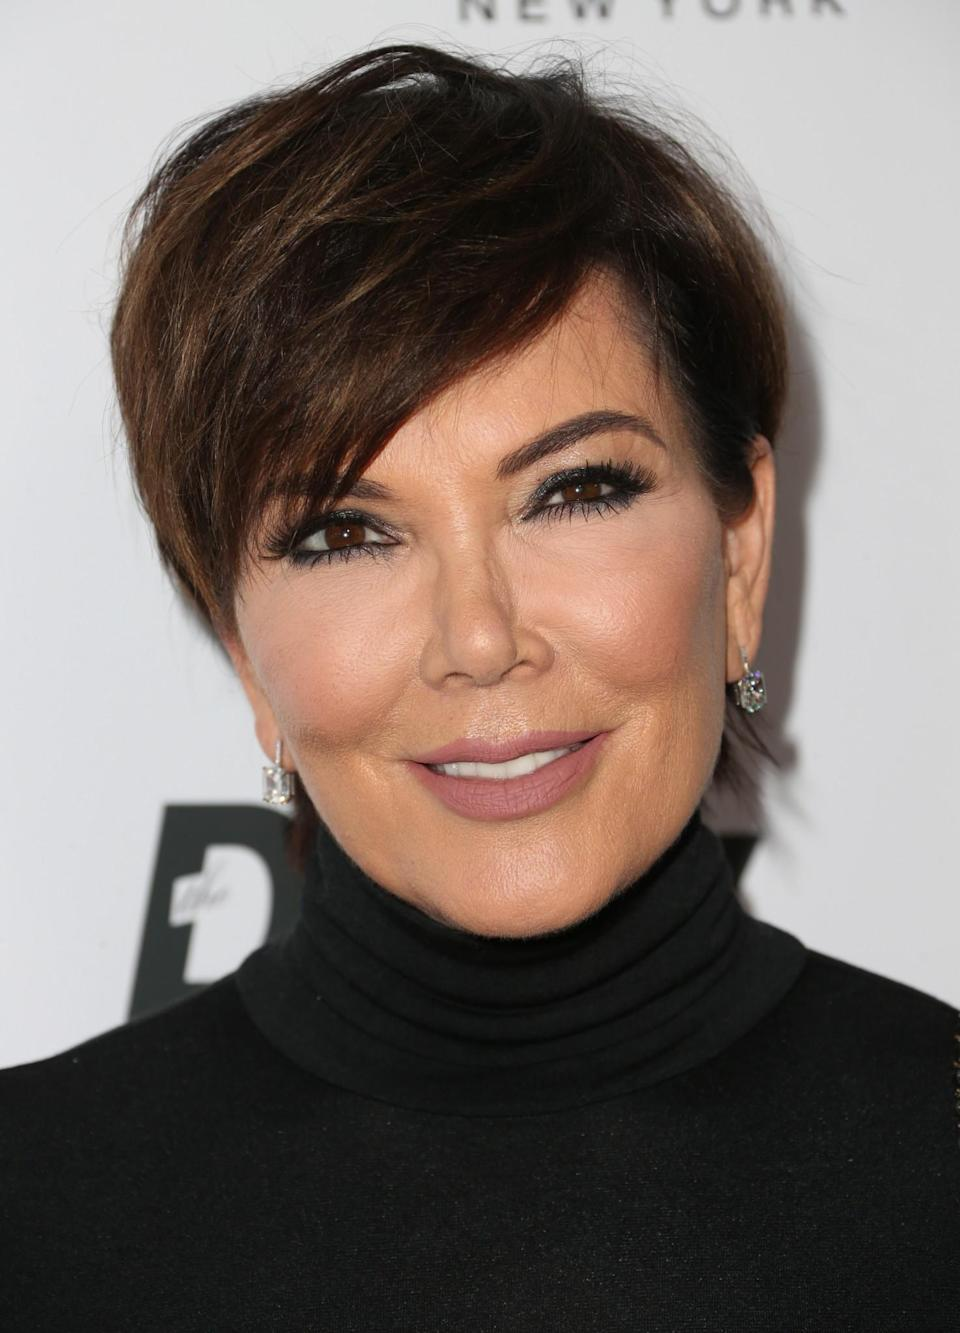 <p>Everyone's fave momager Kris Jenner has stuck with her short crop over the years even though the rest of the Kardashian clan are big fans of hair extensions. [Photo: Getty] </p>